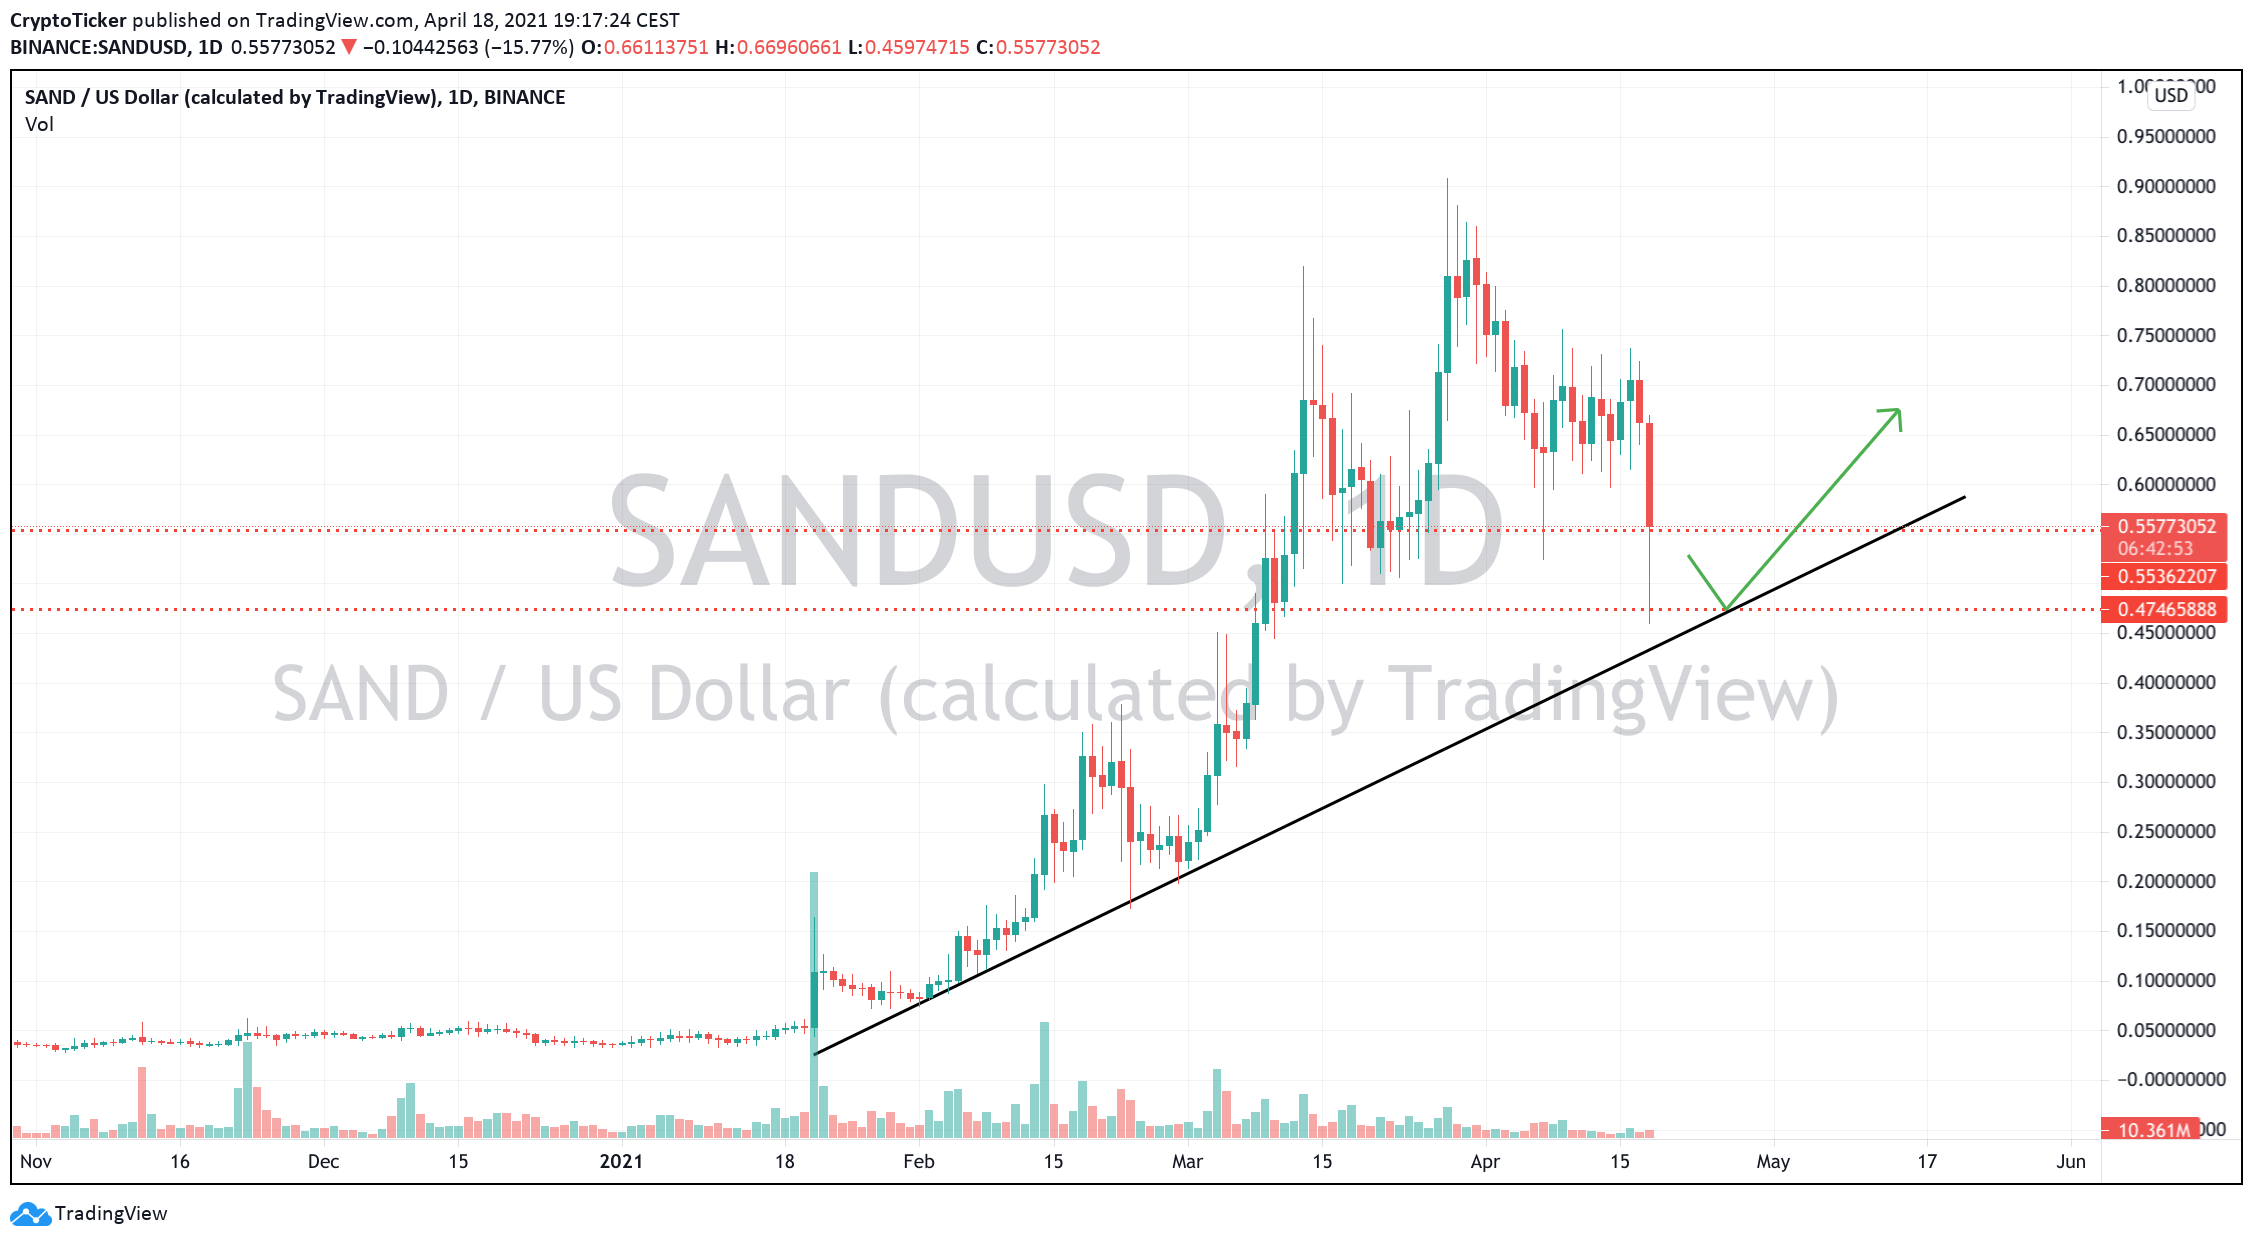 SAND/USD 1-day chart showing the uptrend of SAND since inception